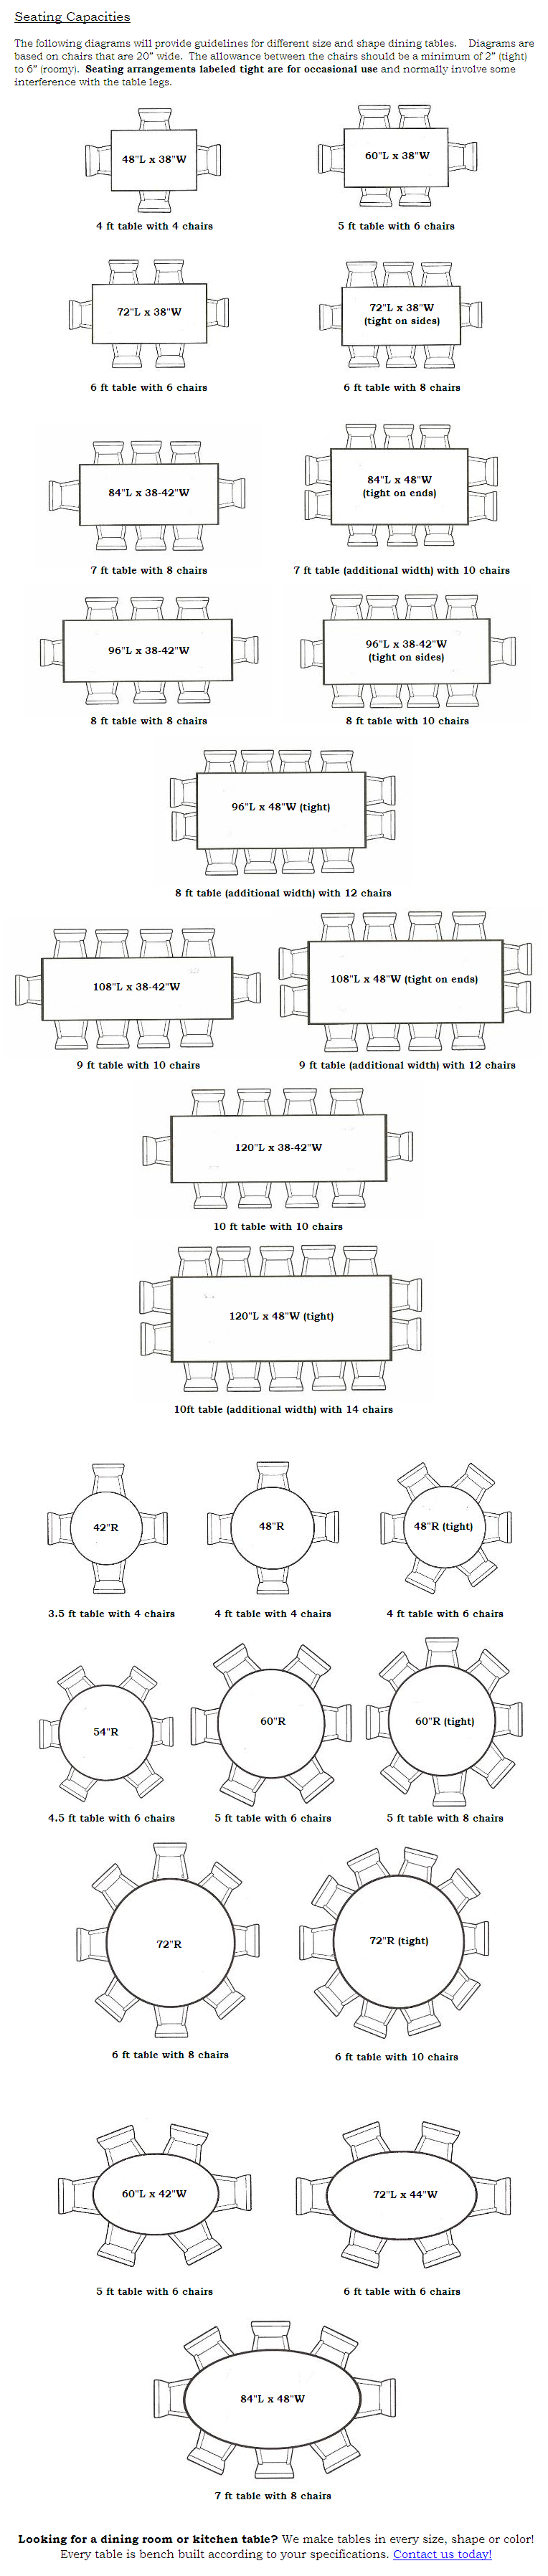 Dining Table Seating Capacities Chart By Size And Shape Wedding